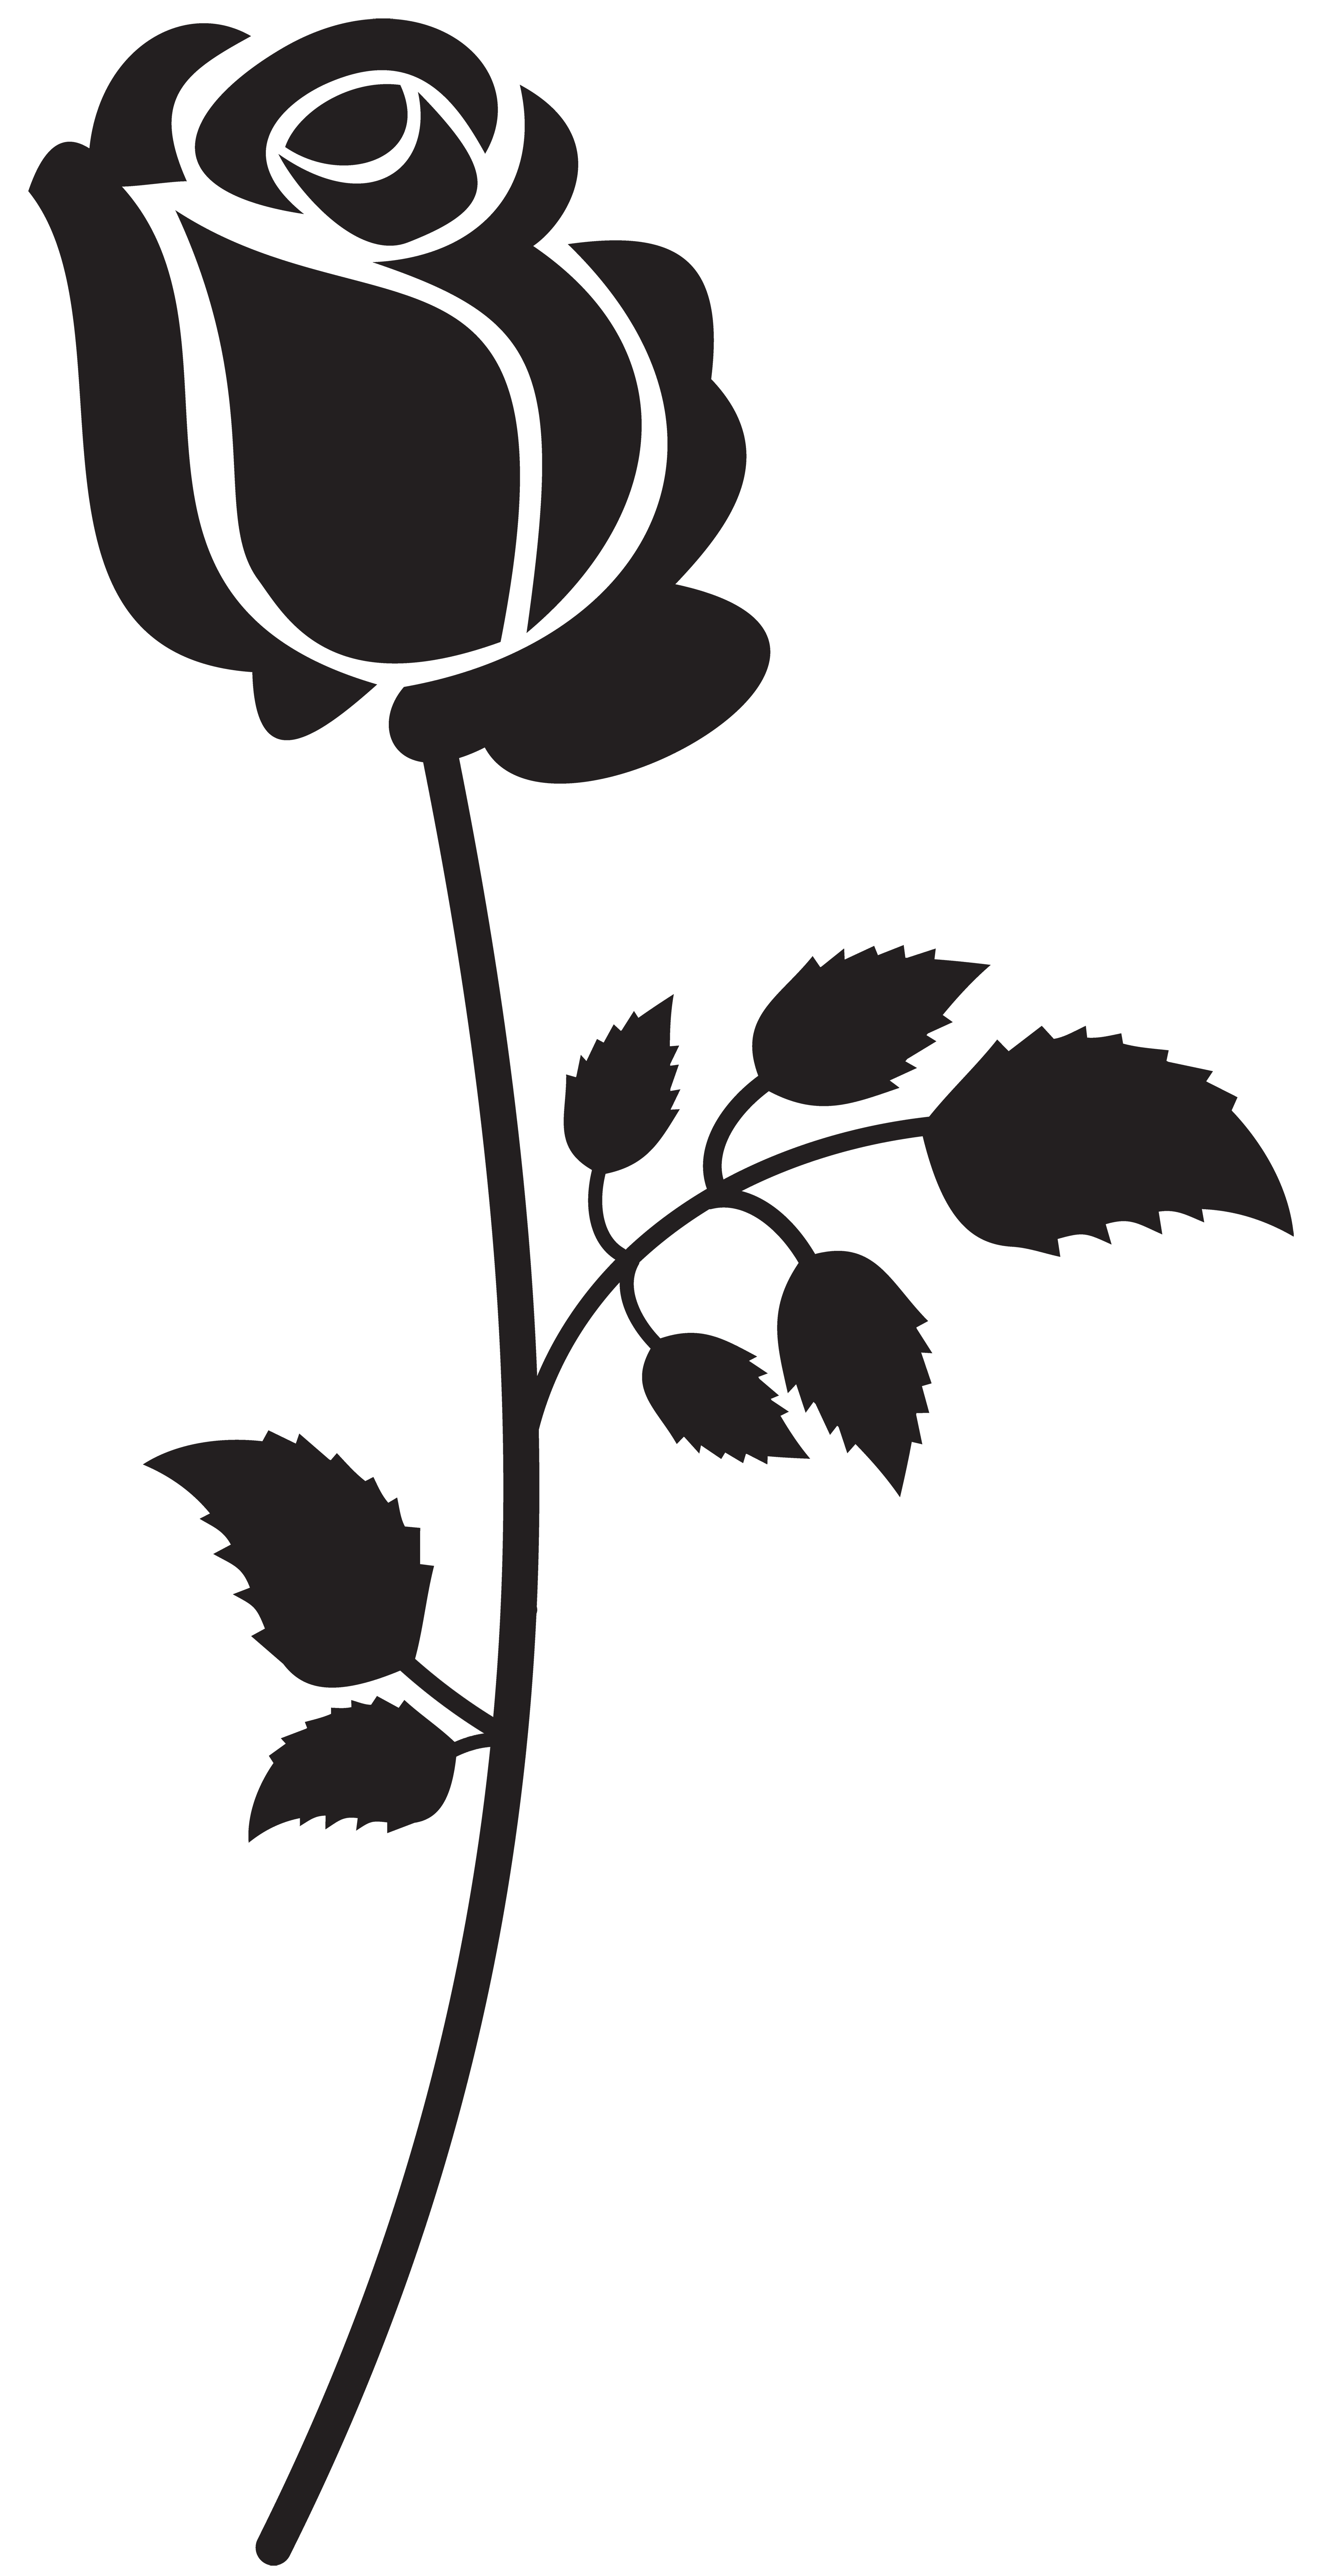 3591x7000 Rose Silhouette Png Clip Art Imageu200b Gallery Yopriceville